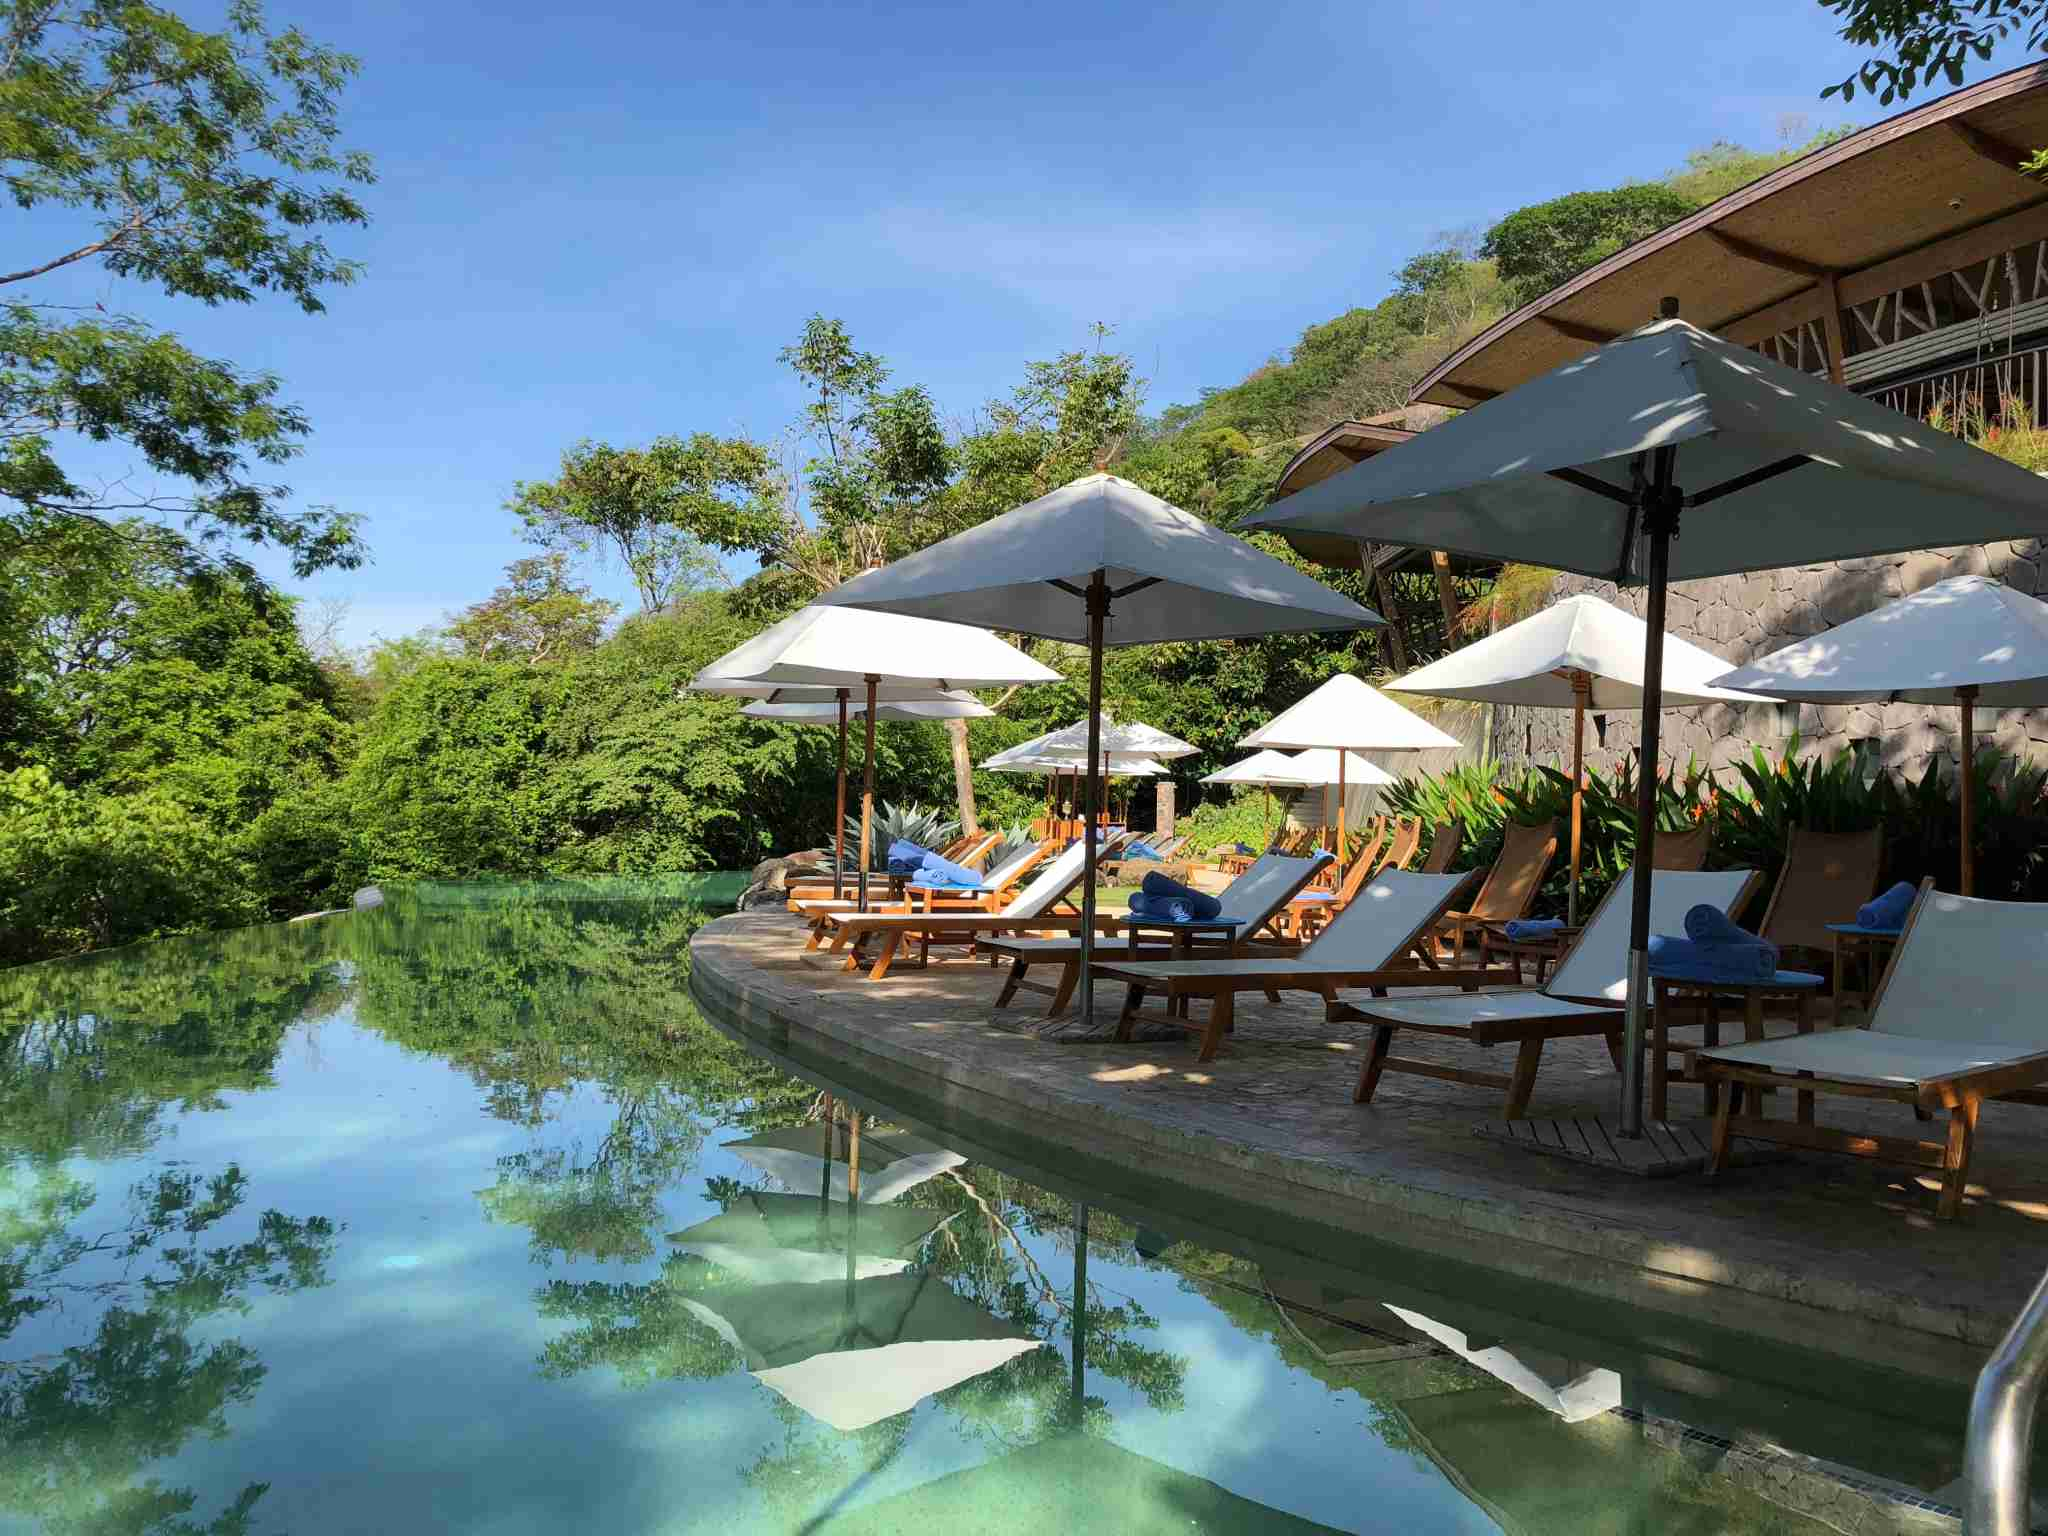 Andaz Costa Rica (Photo by Summer Hull/The Points Guy)